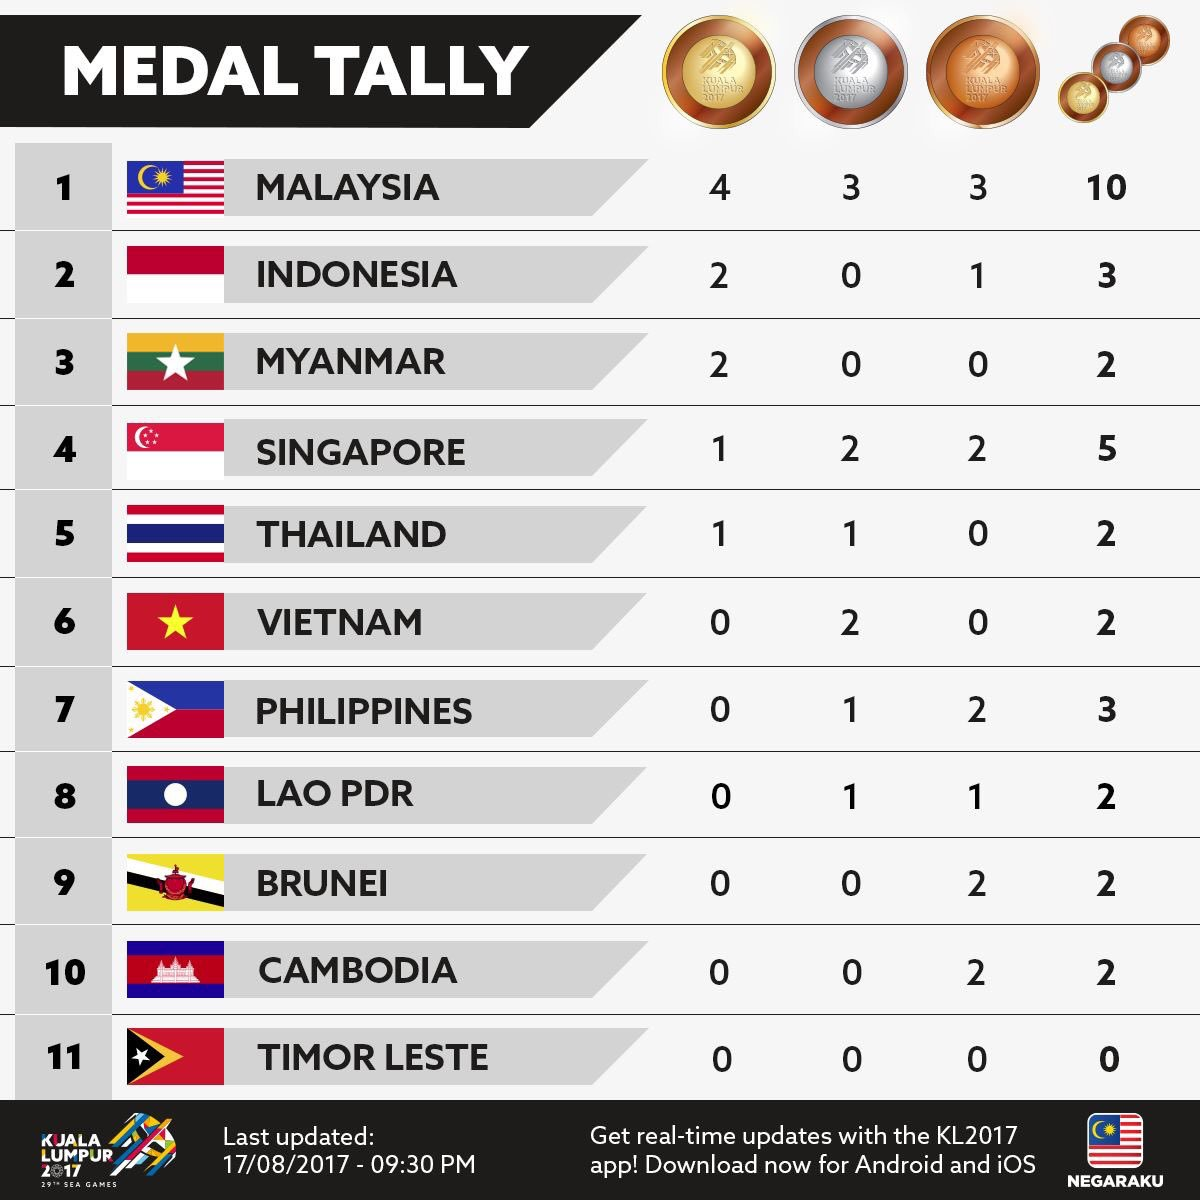 SEA GAMES 2017: Medal tally update